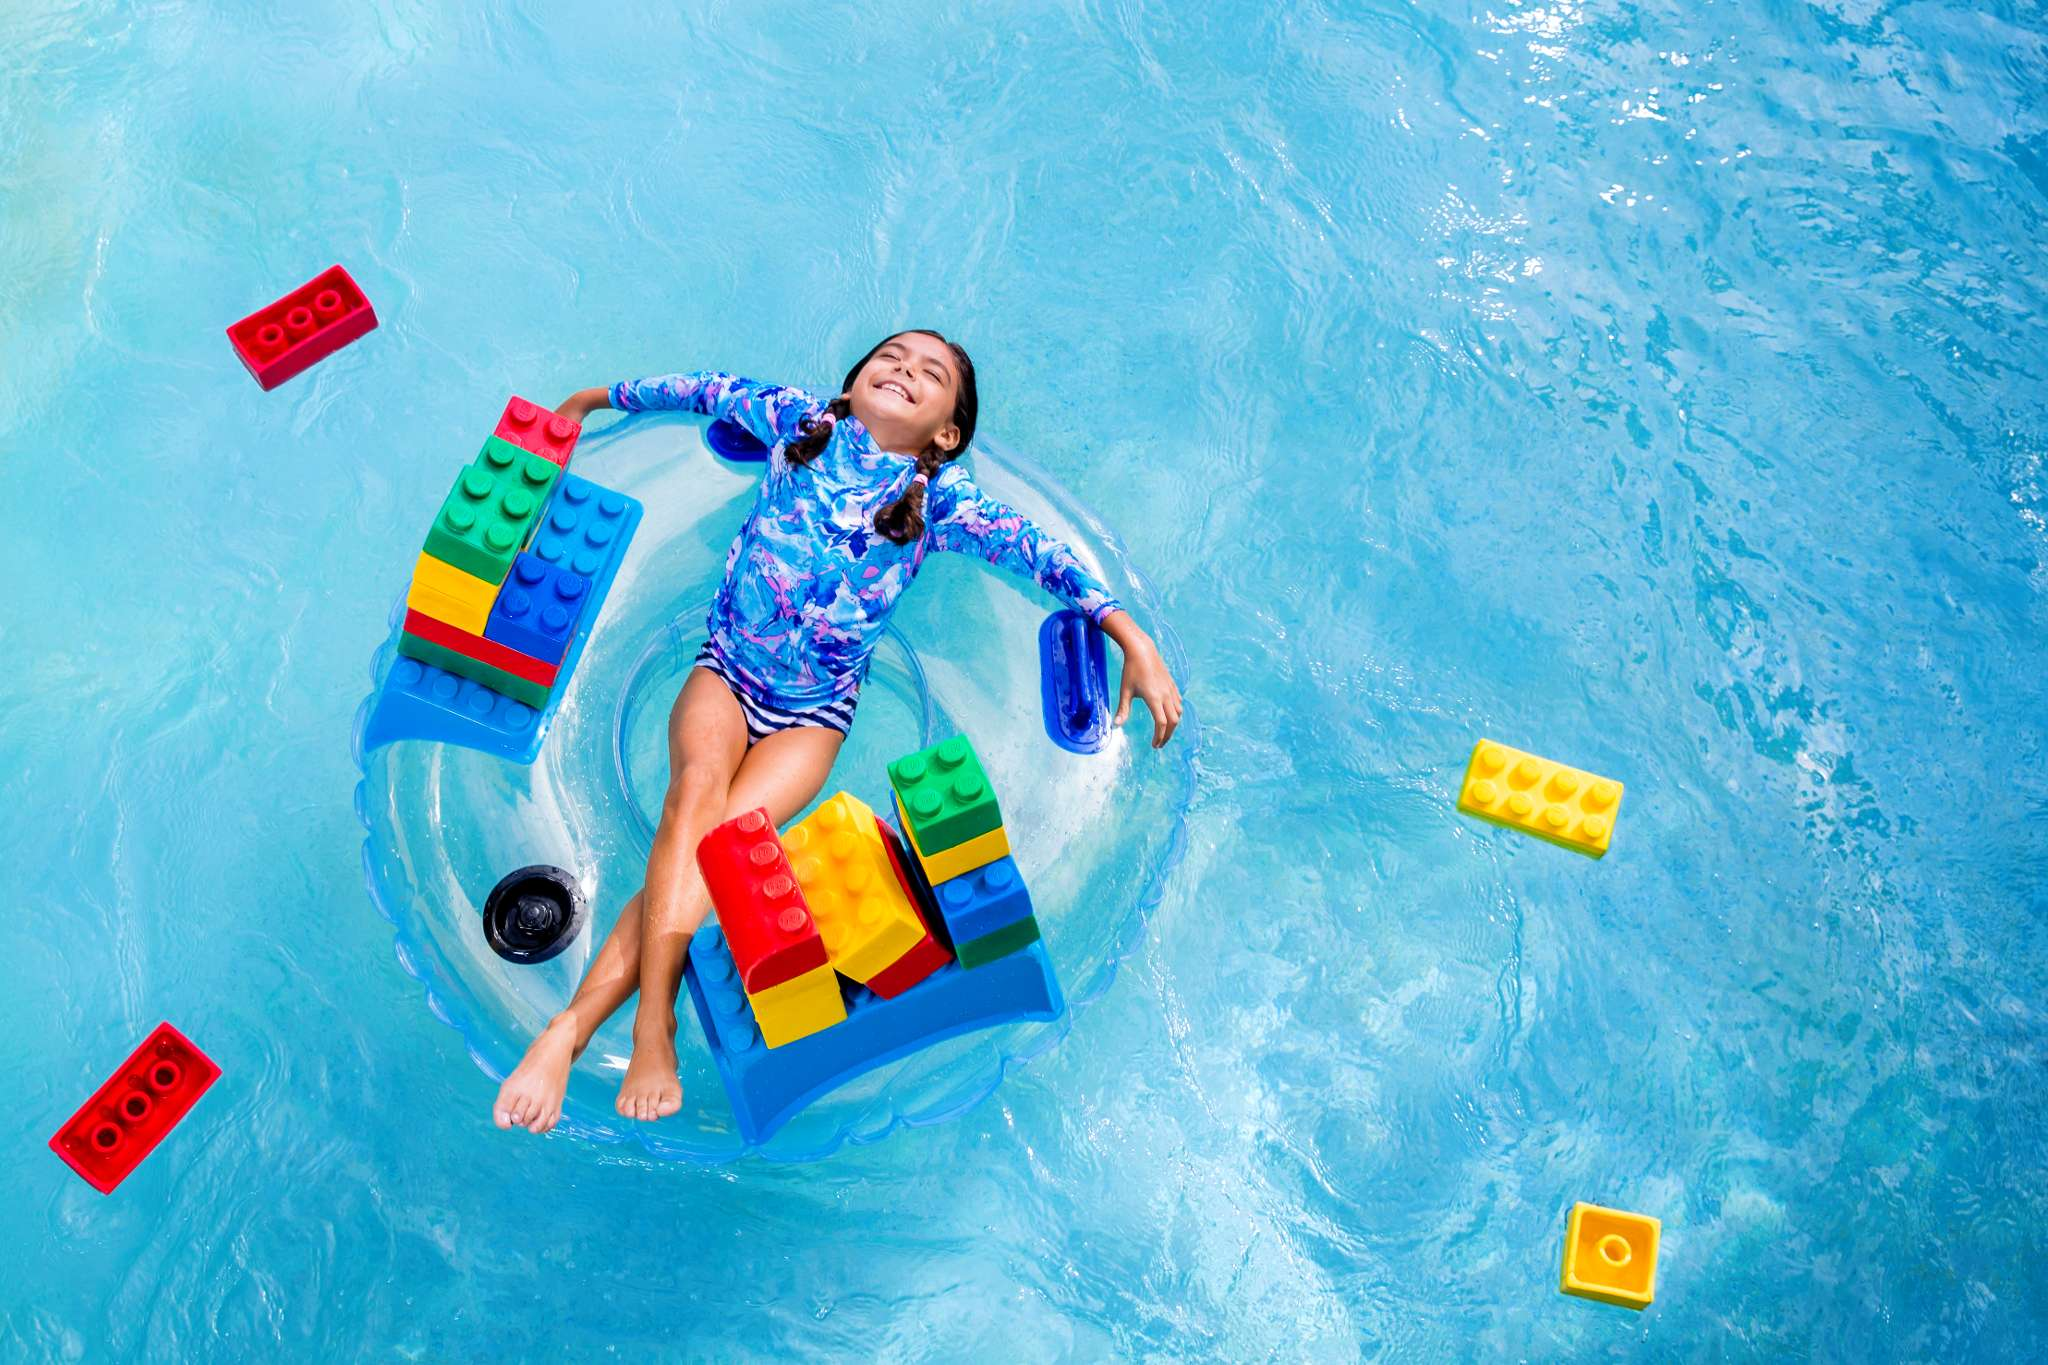 girl floating in a pool with legos floating around her